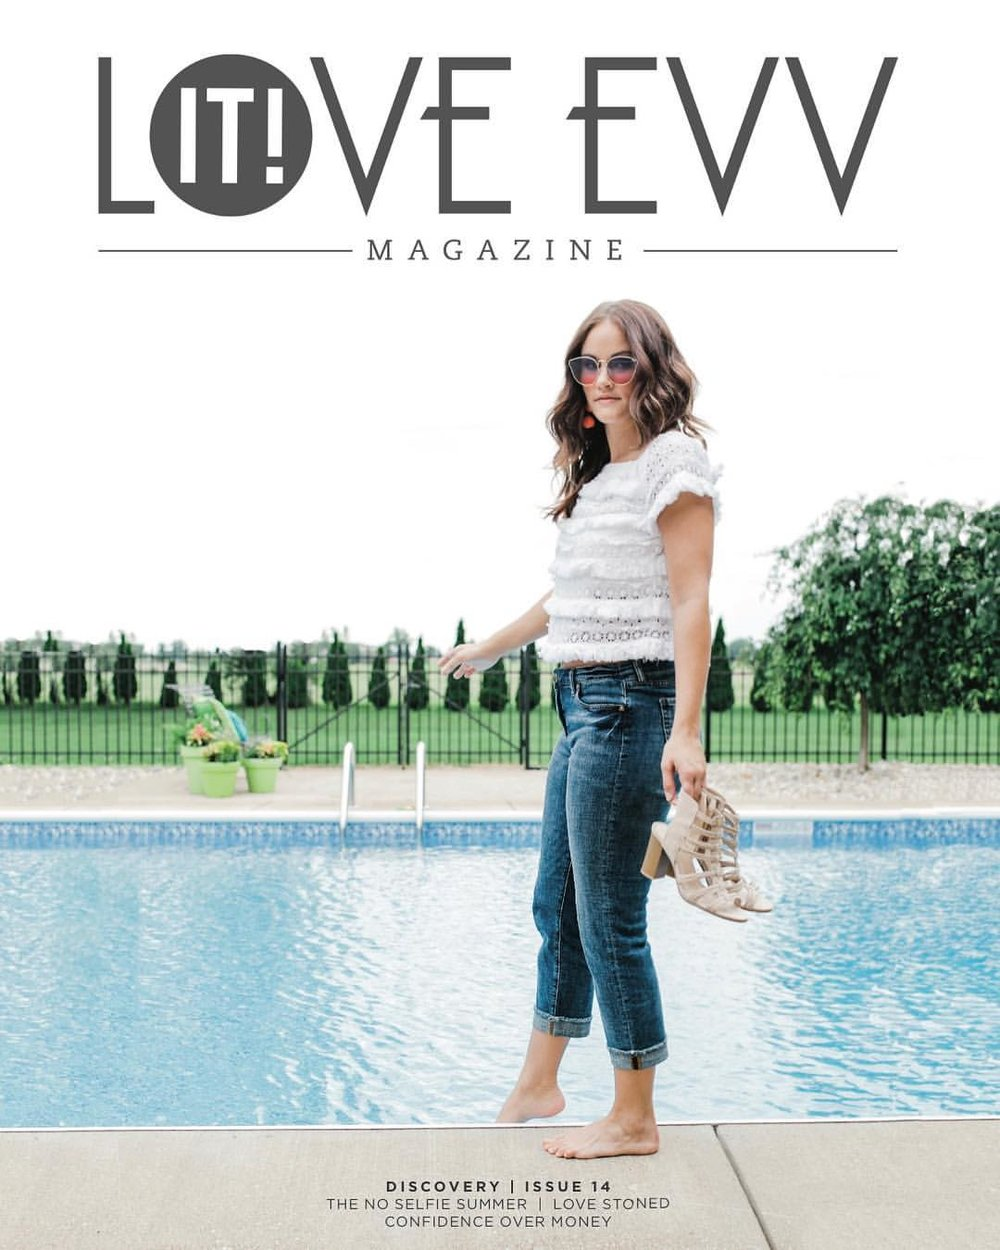 Issue 14 Discovery Love IT! EVV Magazine